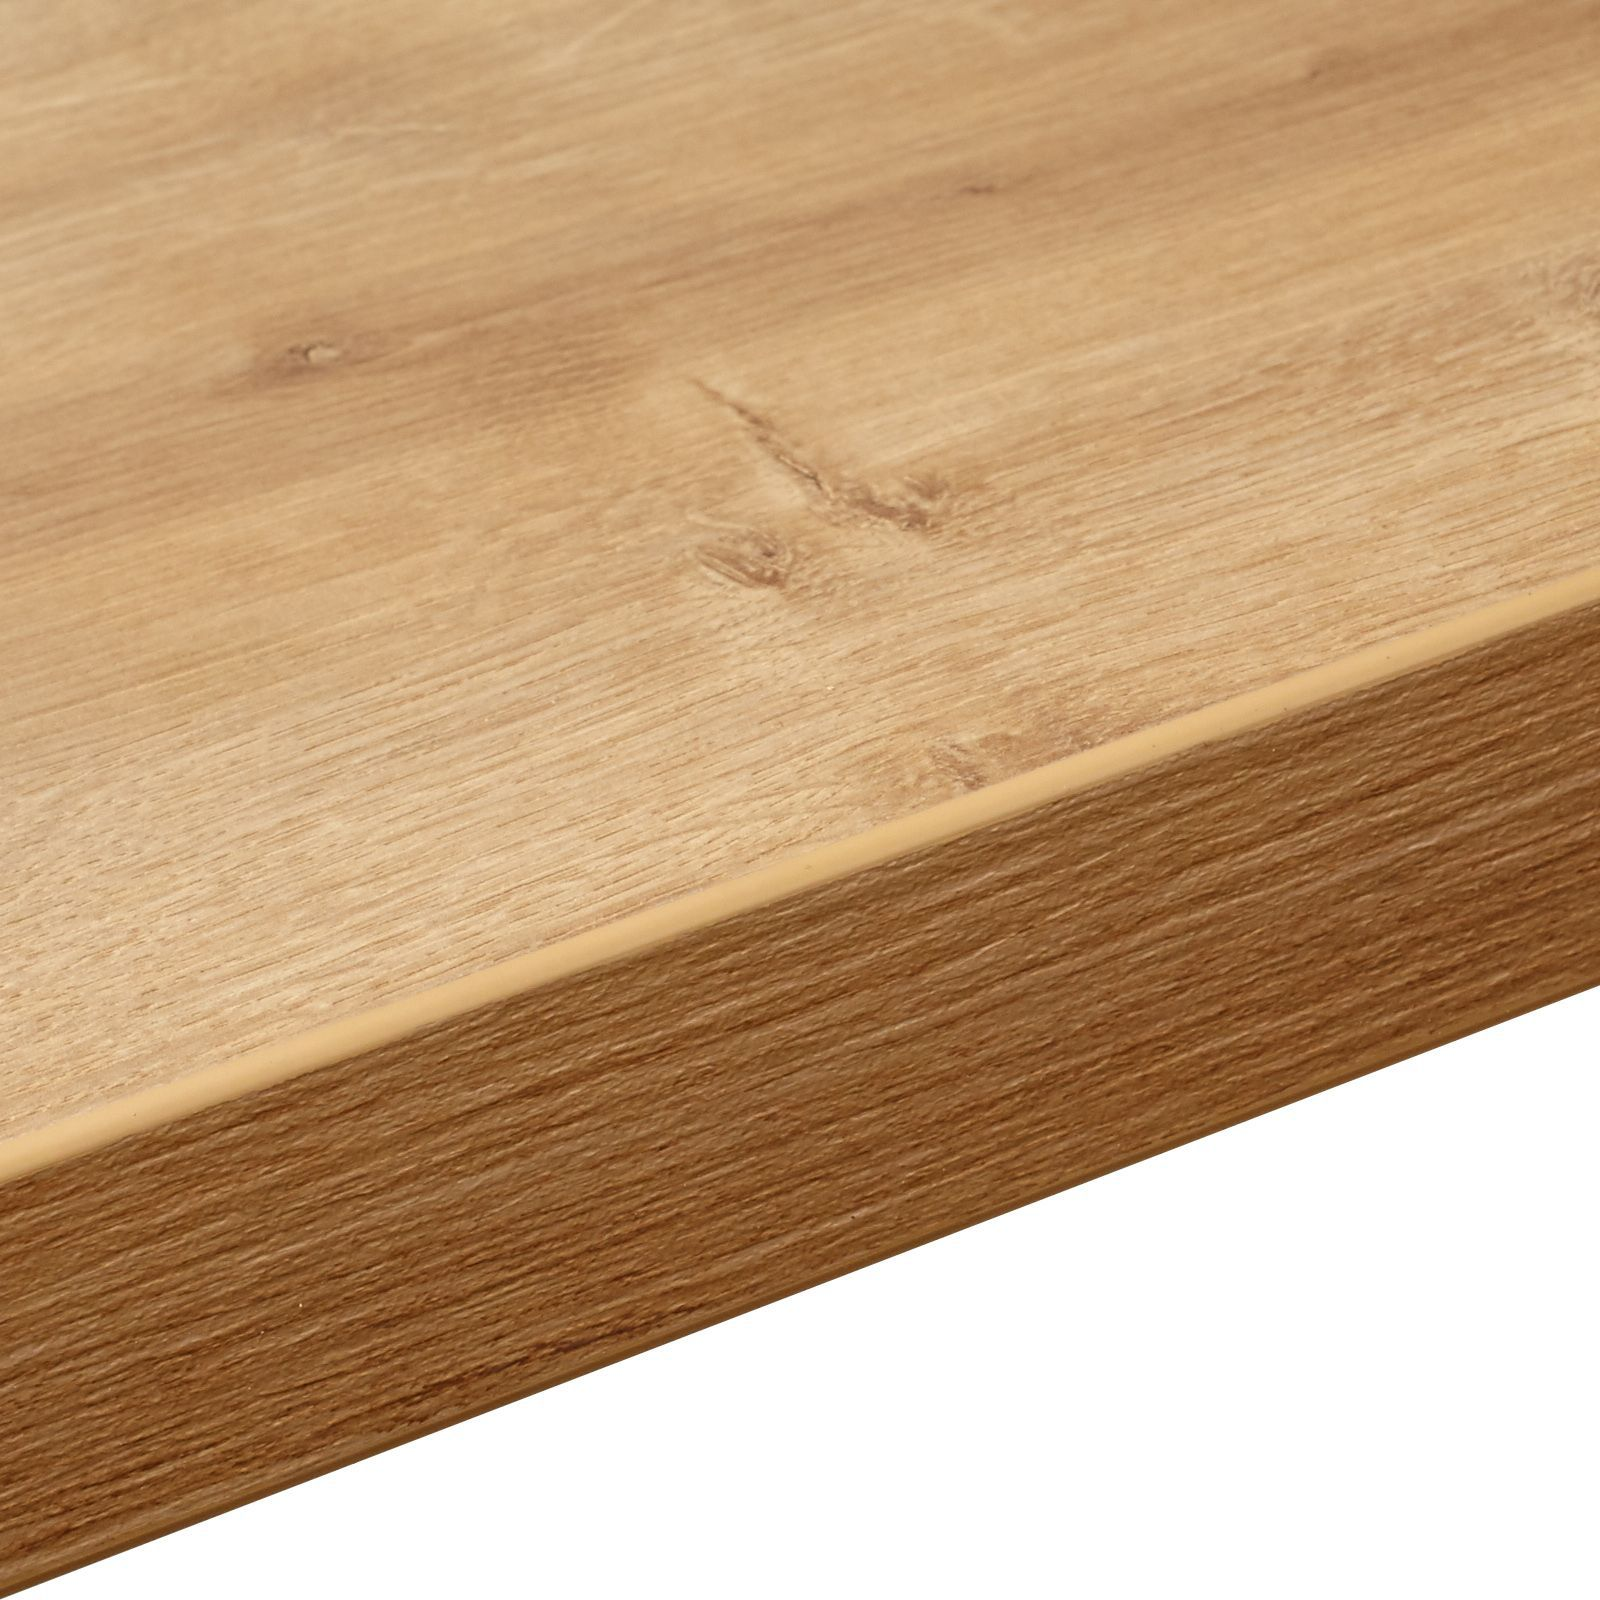 38mm Arlington Soft grain Oak effect Square edge